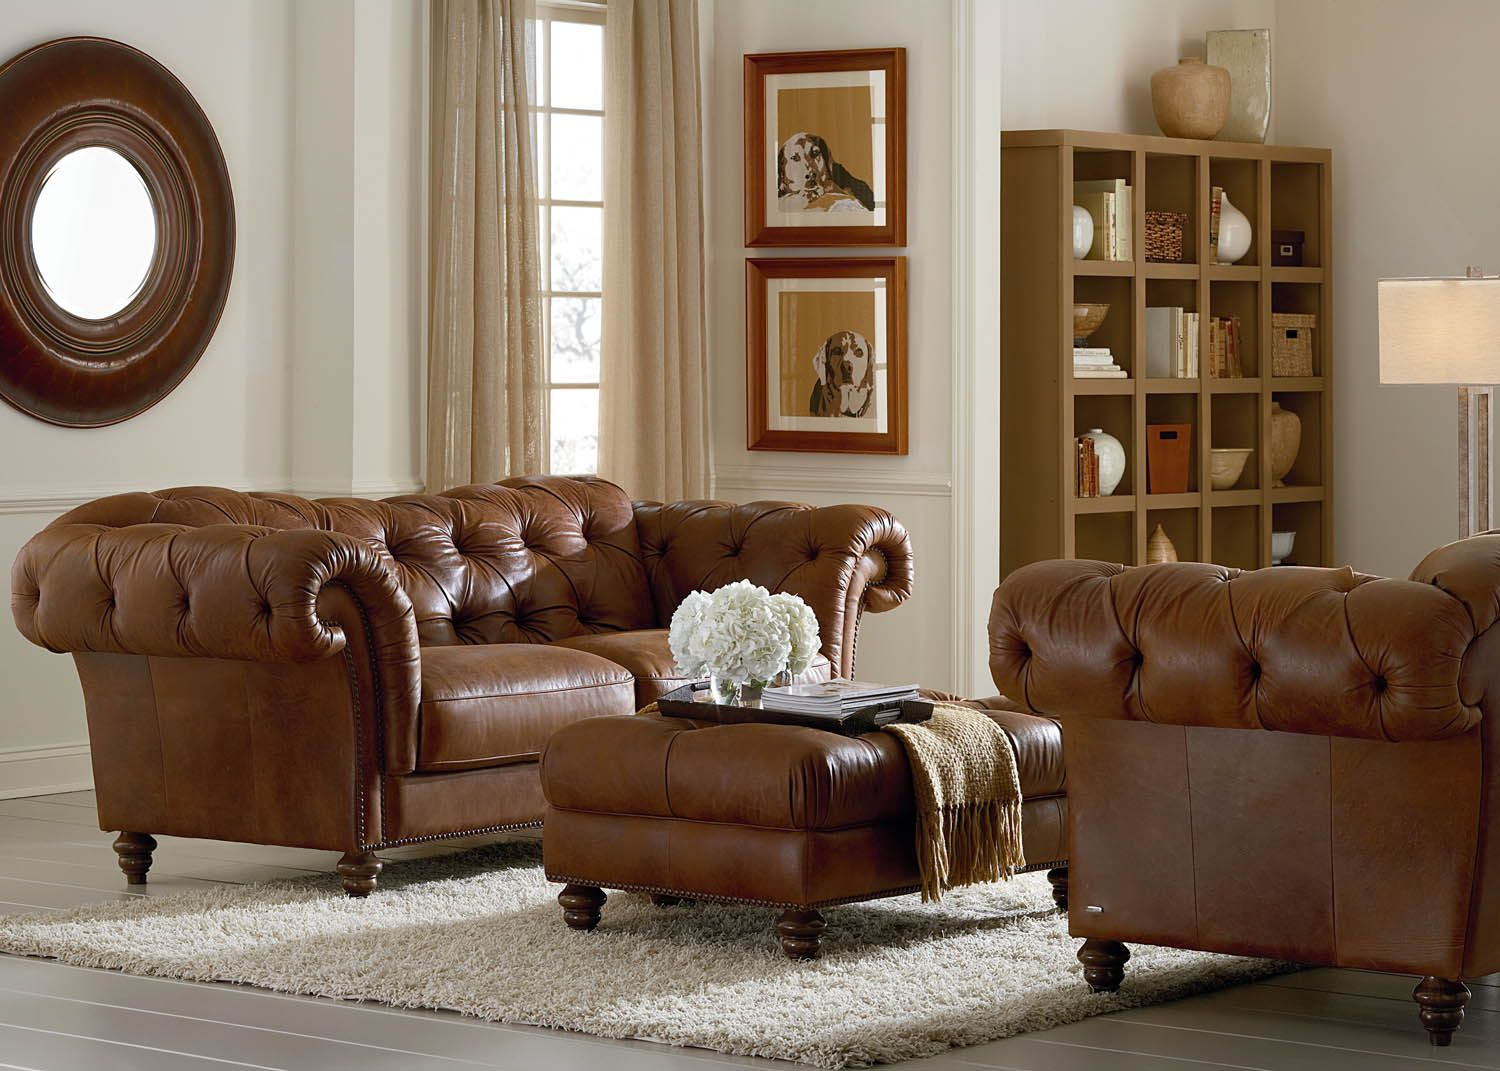 Natuzzi Sofa Test Tufted Leather Sofa Natuzzi There 39s That Sofa I Want